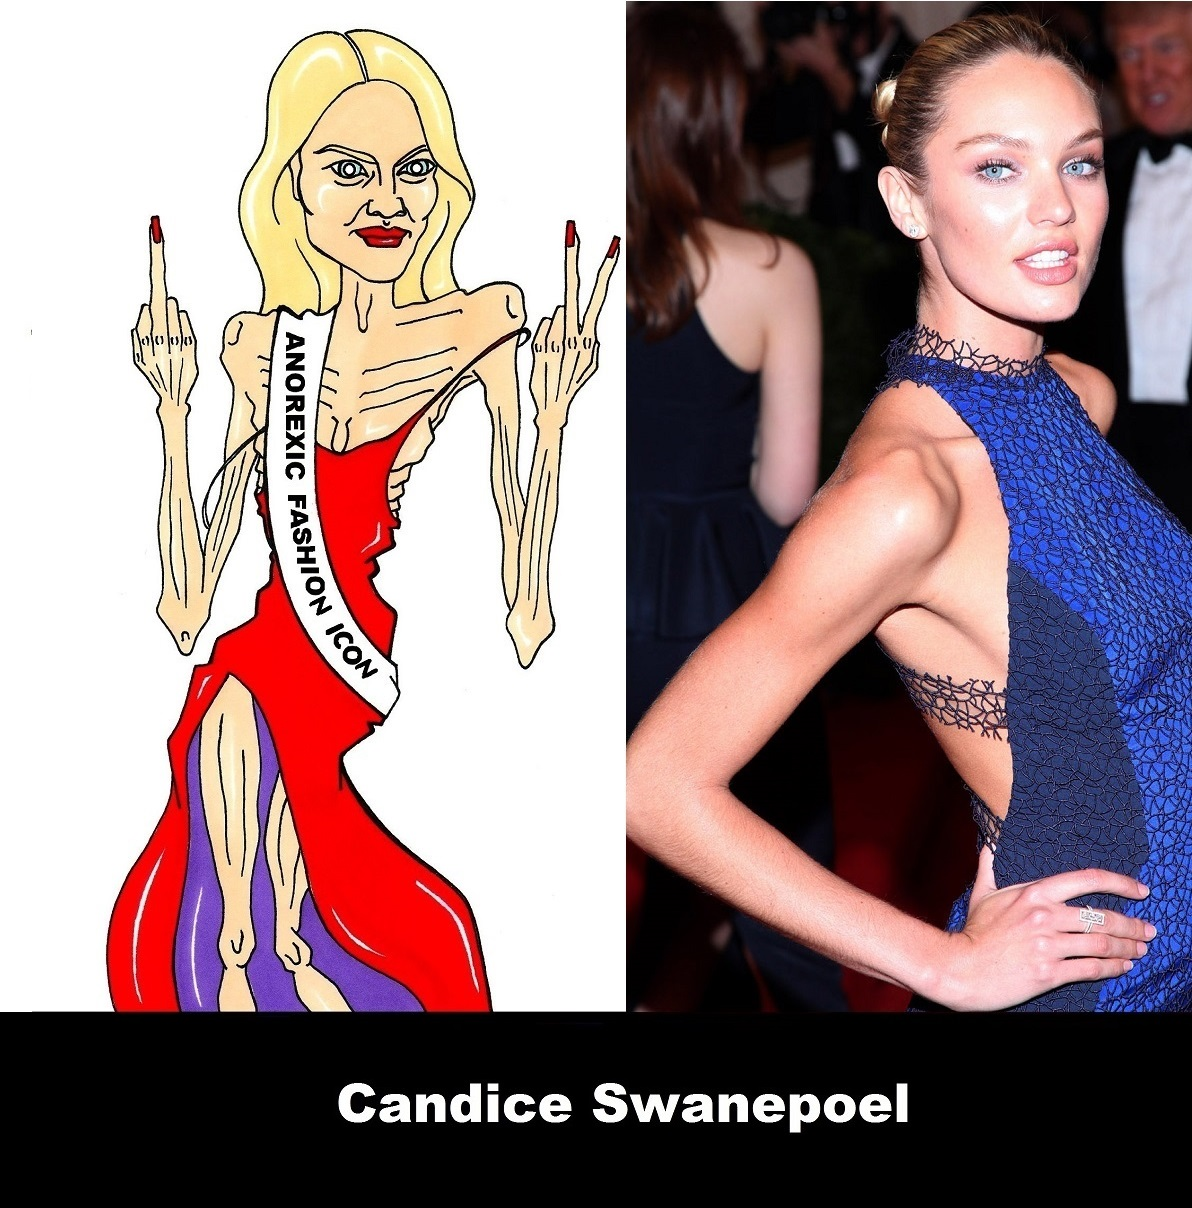 http://3.bp.blogspot.com/-icmov_W1fMQ/UXK5vKroTpI/AAAAAAAAM_I/ylPM0aNKfp0/s1600/Candice+Swanepoel+the+most+influential+Anorexic+Fashion+icon+ever+Anorexia+Kills+Portrait+Art+Satire+Critic++Humor+Chic+by+aleXsandro+Palombo+3.jpg